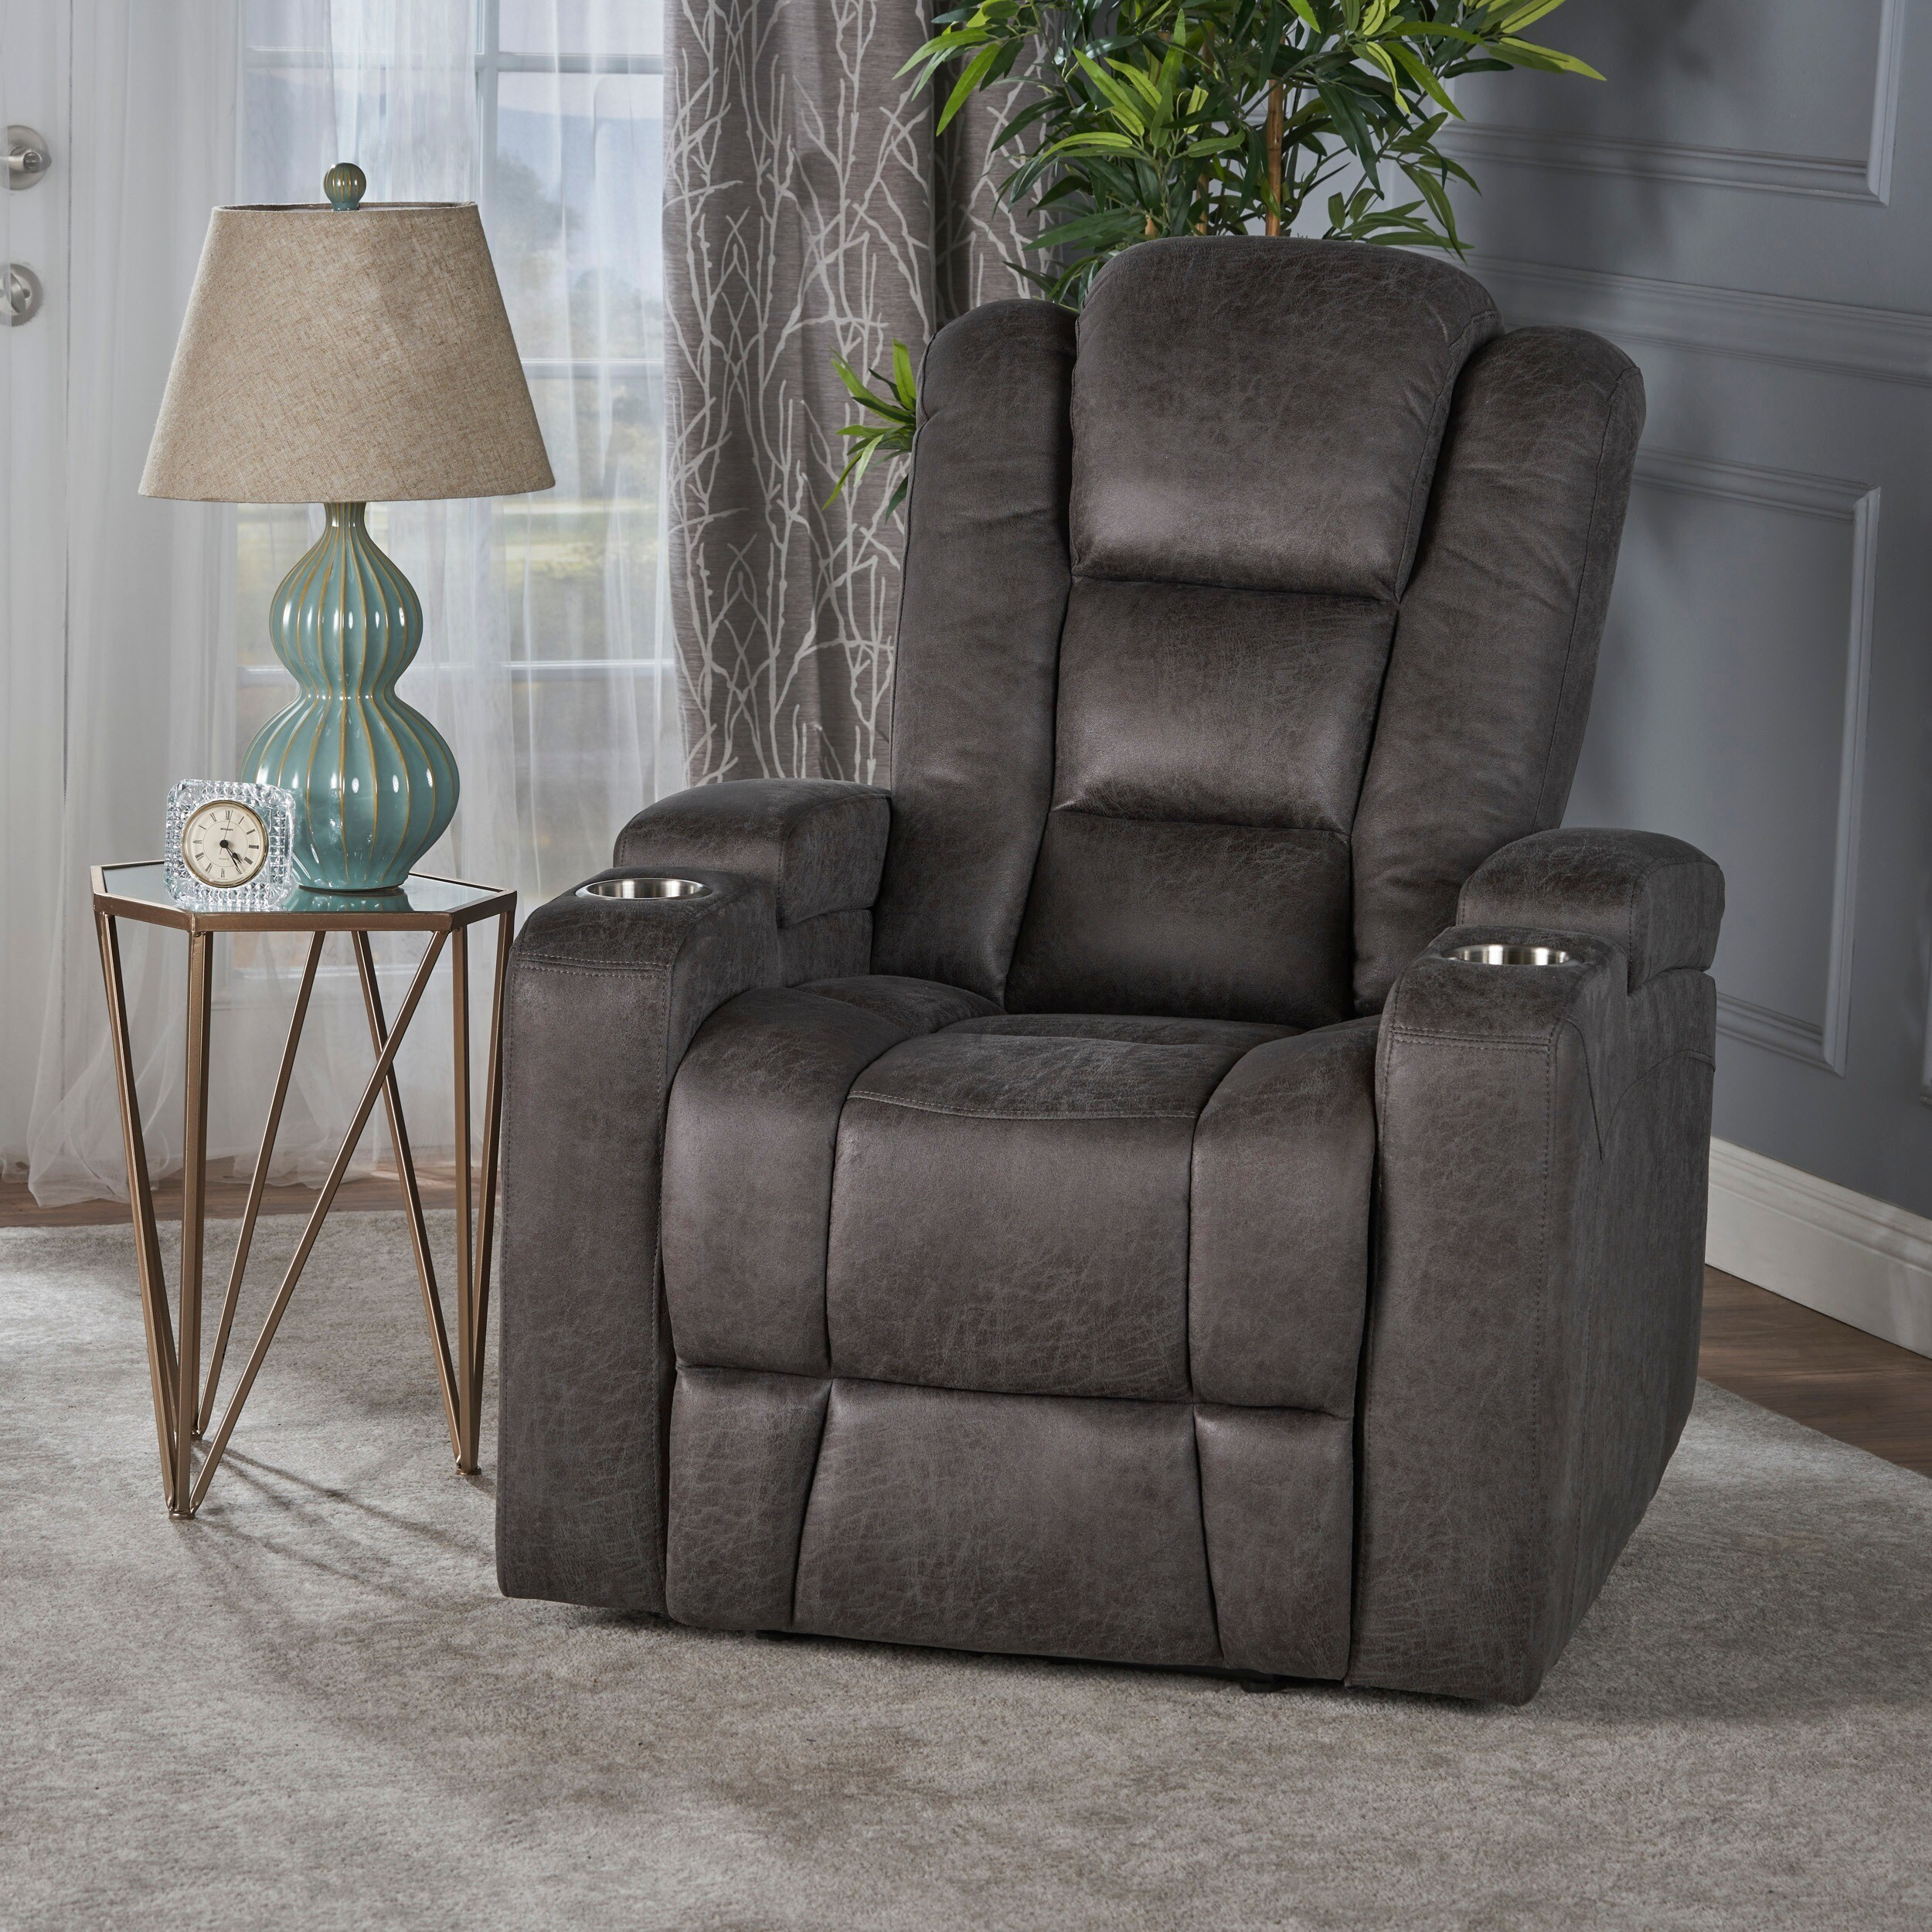 Superbe Shop Emersyn Microfiber Power Recliner With Arm Storage U0026 USB Cord By  Christopher Knight Home   Free Shipping Today   Overstock.com   17570832